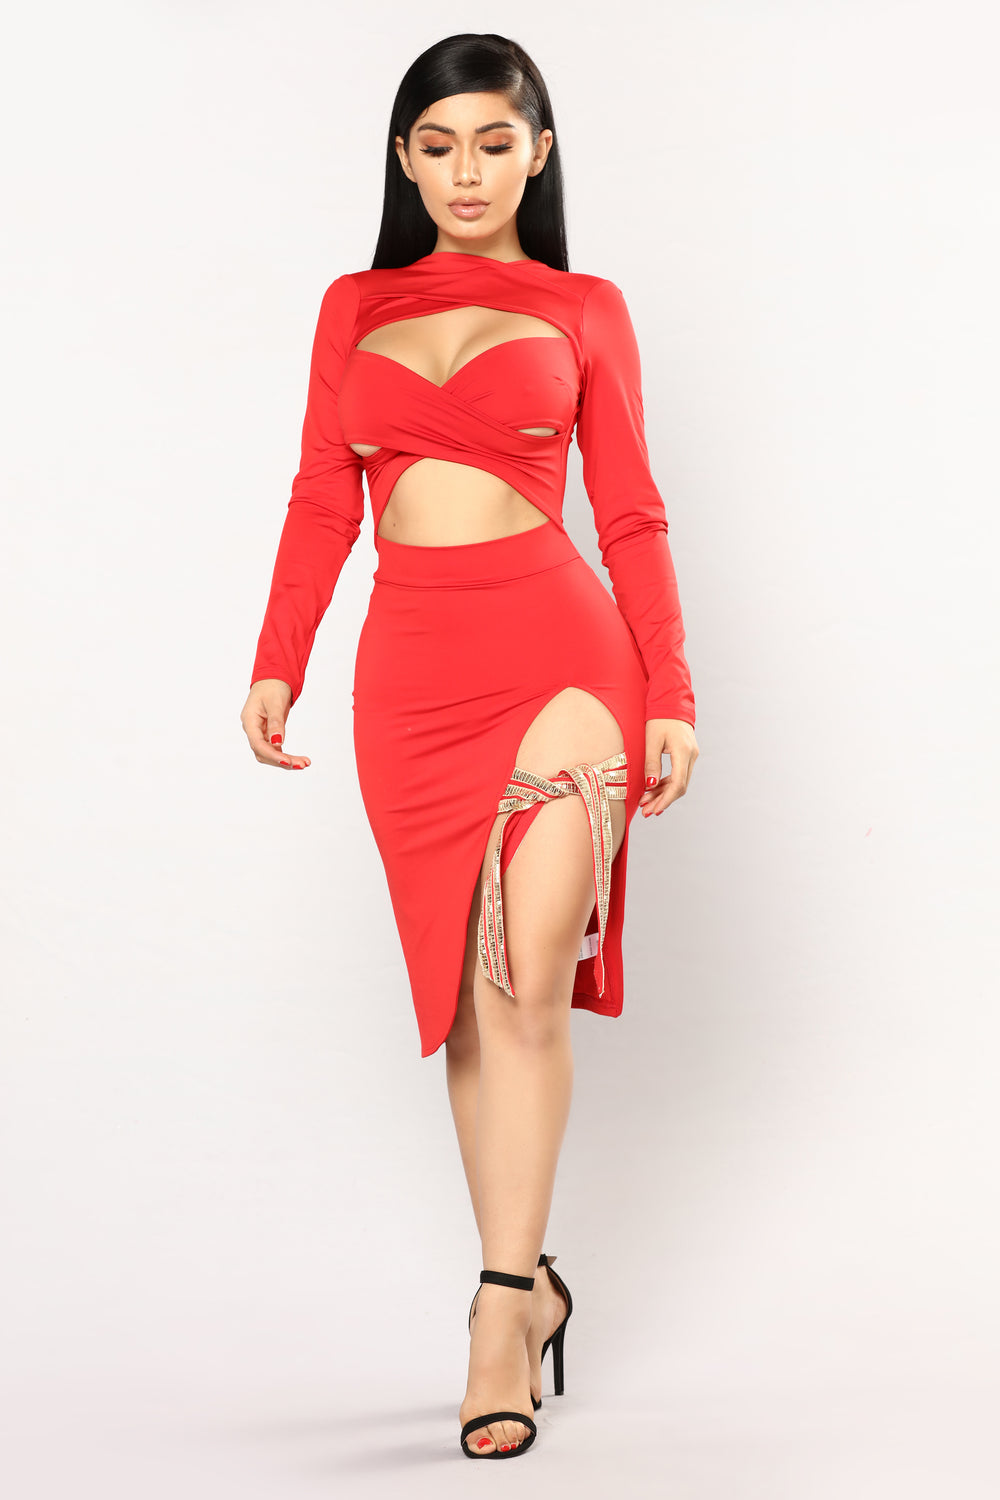 Say It Strappy Dress - Red